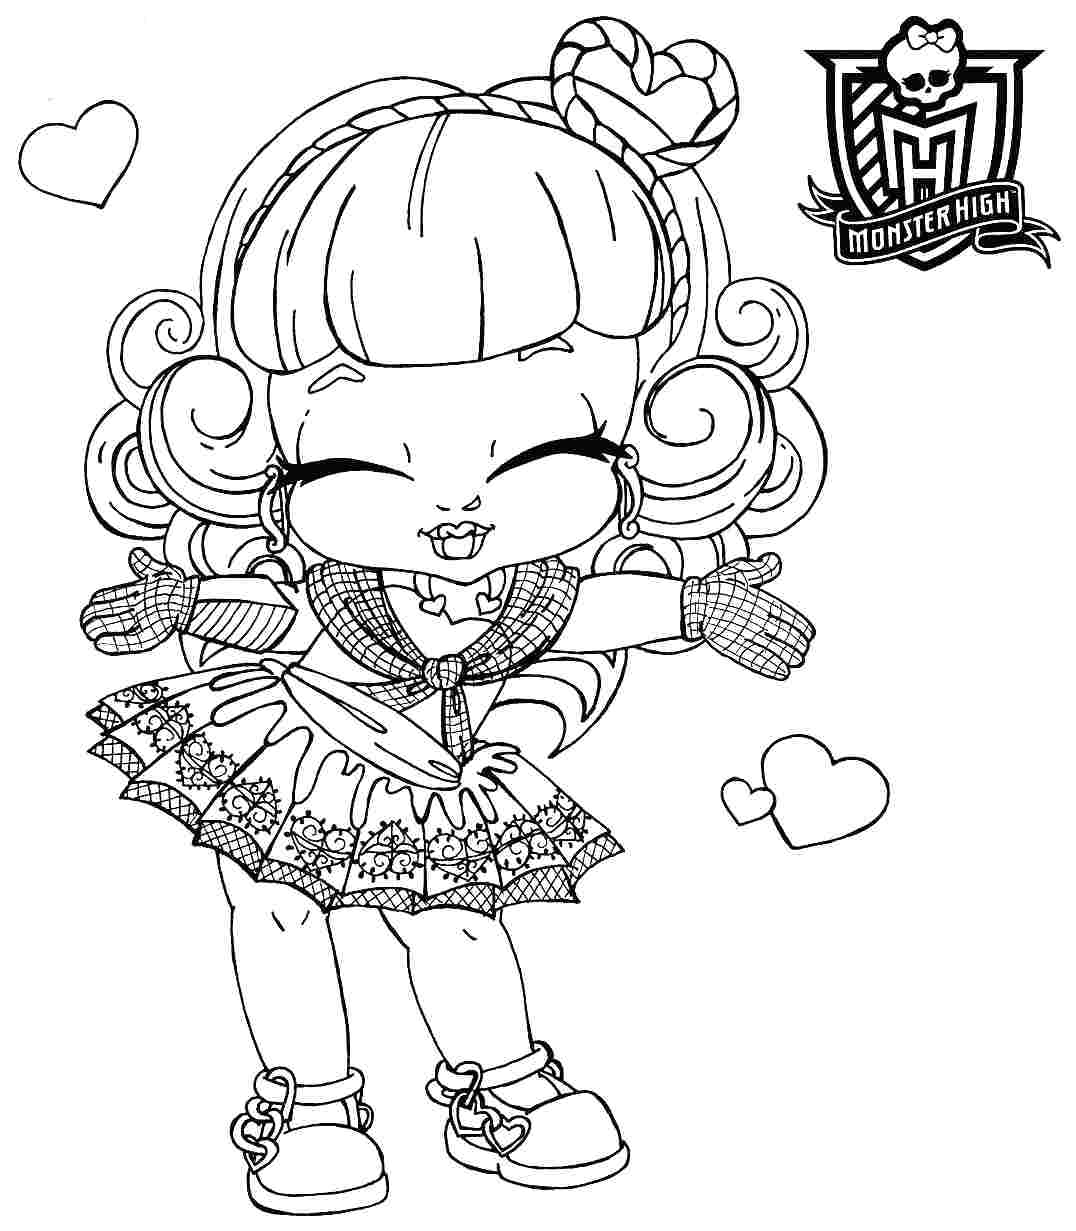 Monster High Baby Coloring Pages 012 to Coloring Pages Collection Of Inspiring Monster High Coloring Pages Colouring Sheets Printables Gallery